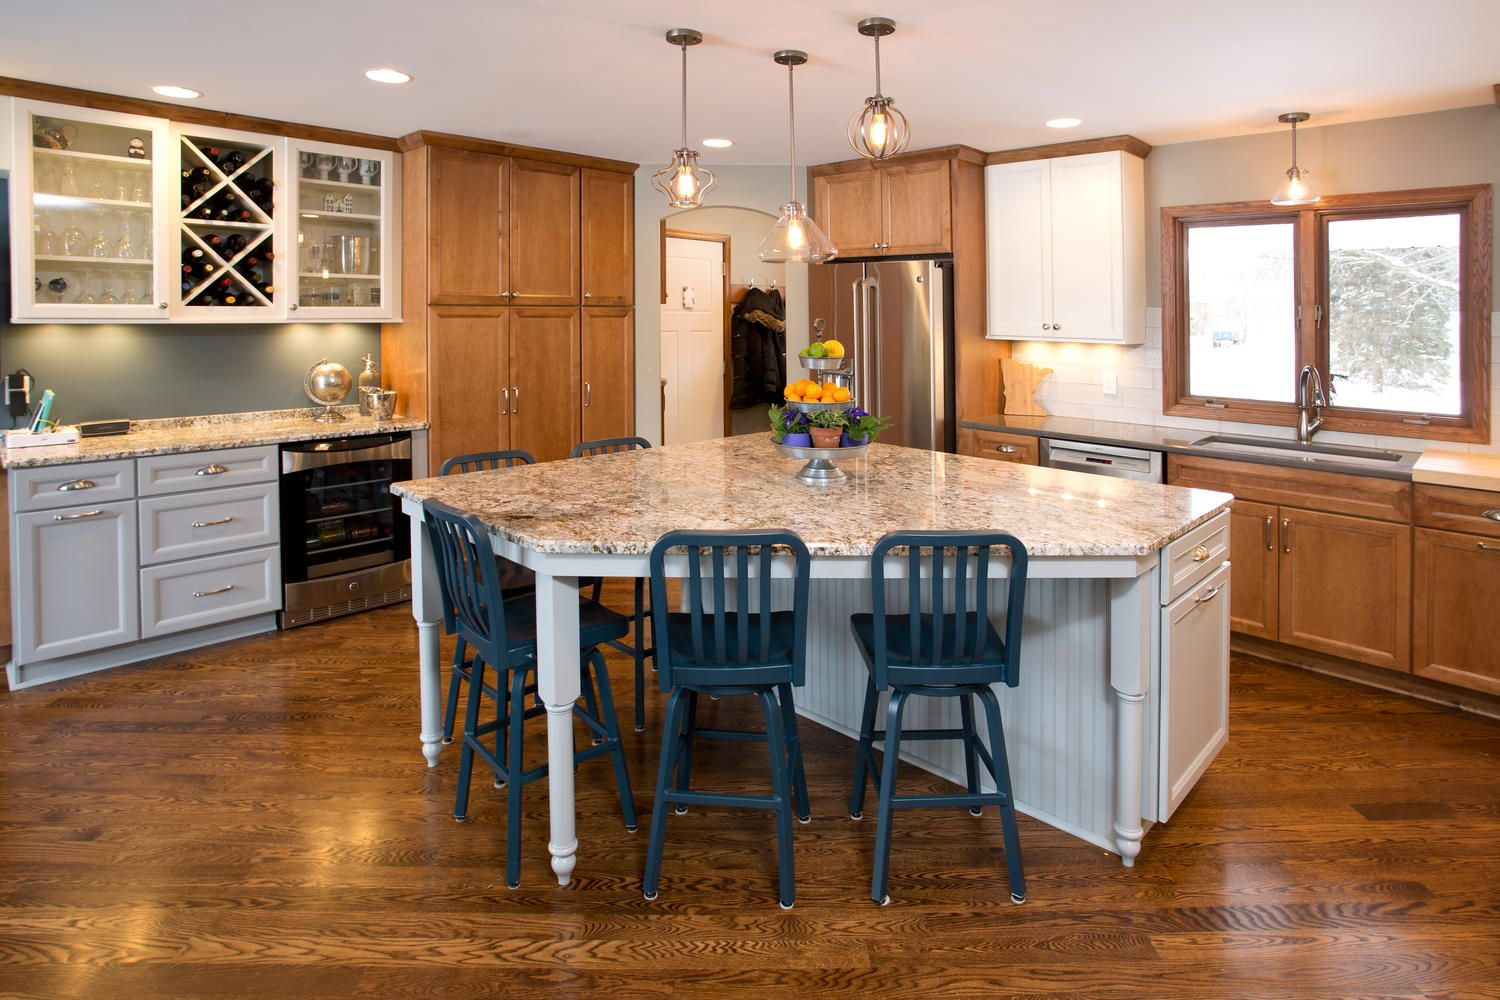 Updating Oak Cabinets Doors Floors Trim Living With Oak 101 New Spaces Remodeling Contractor Oak Cabinets White Kitchen Oak Trim Oak Floor Kitchen